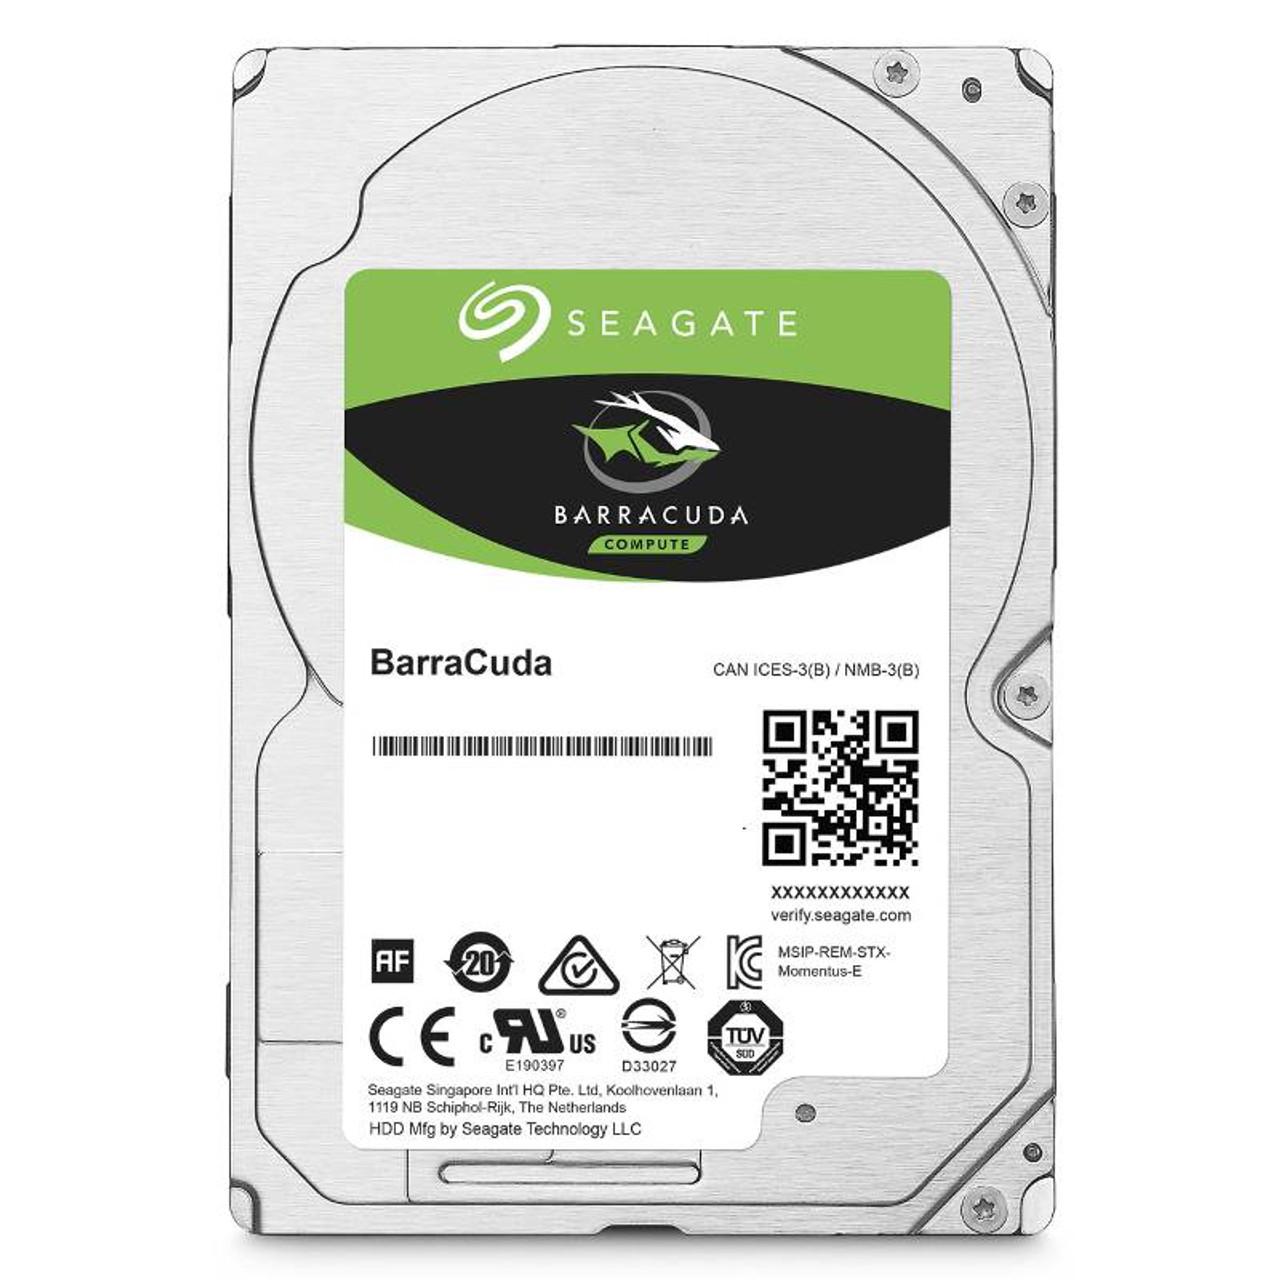 Product image for Seagate Barracuda 2.5in 3TB HDD   CX Computer Superstore